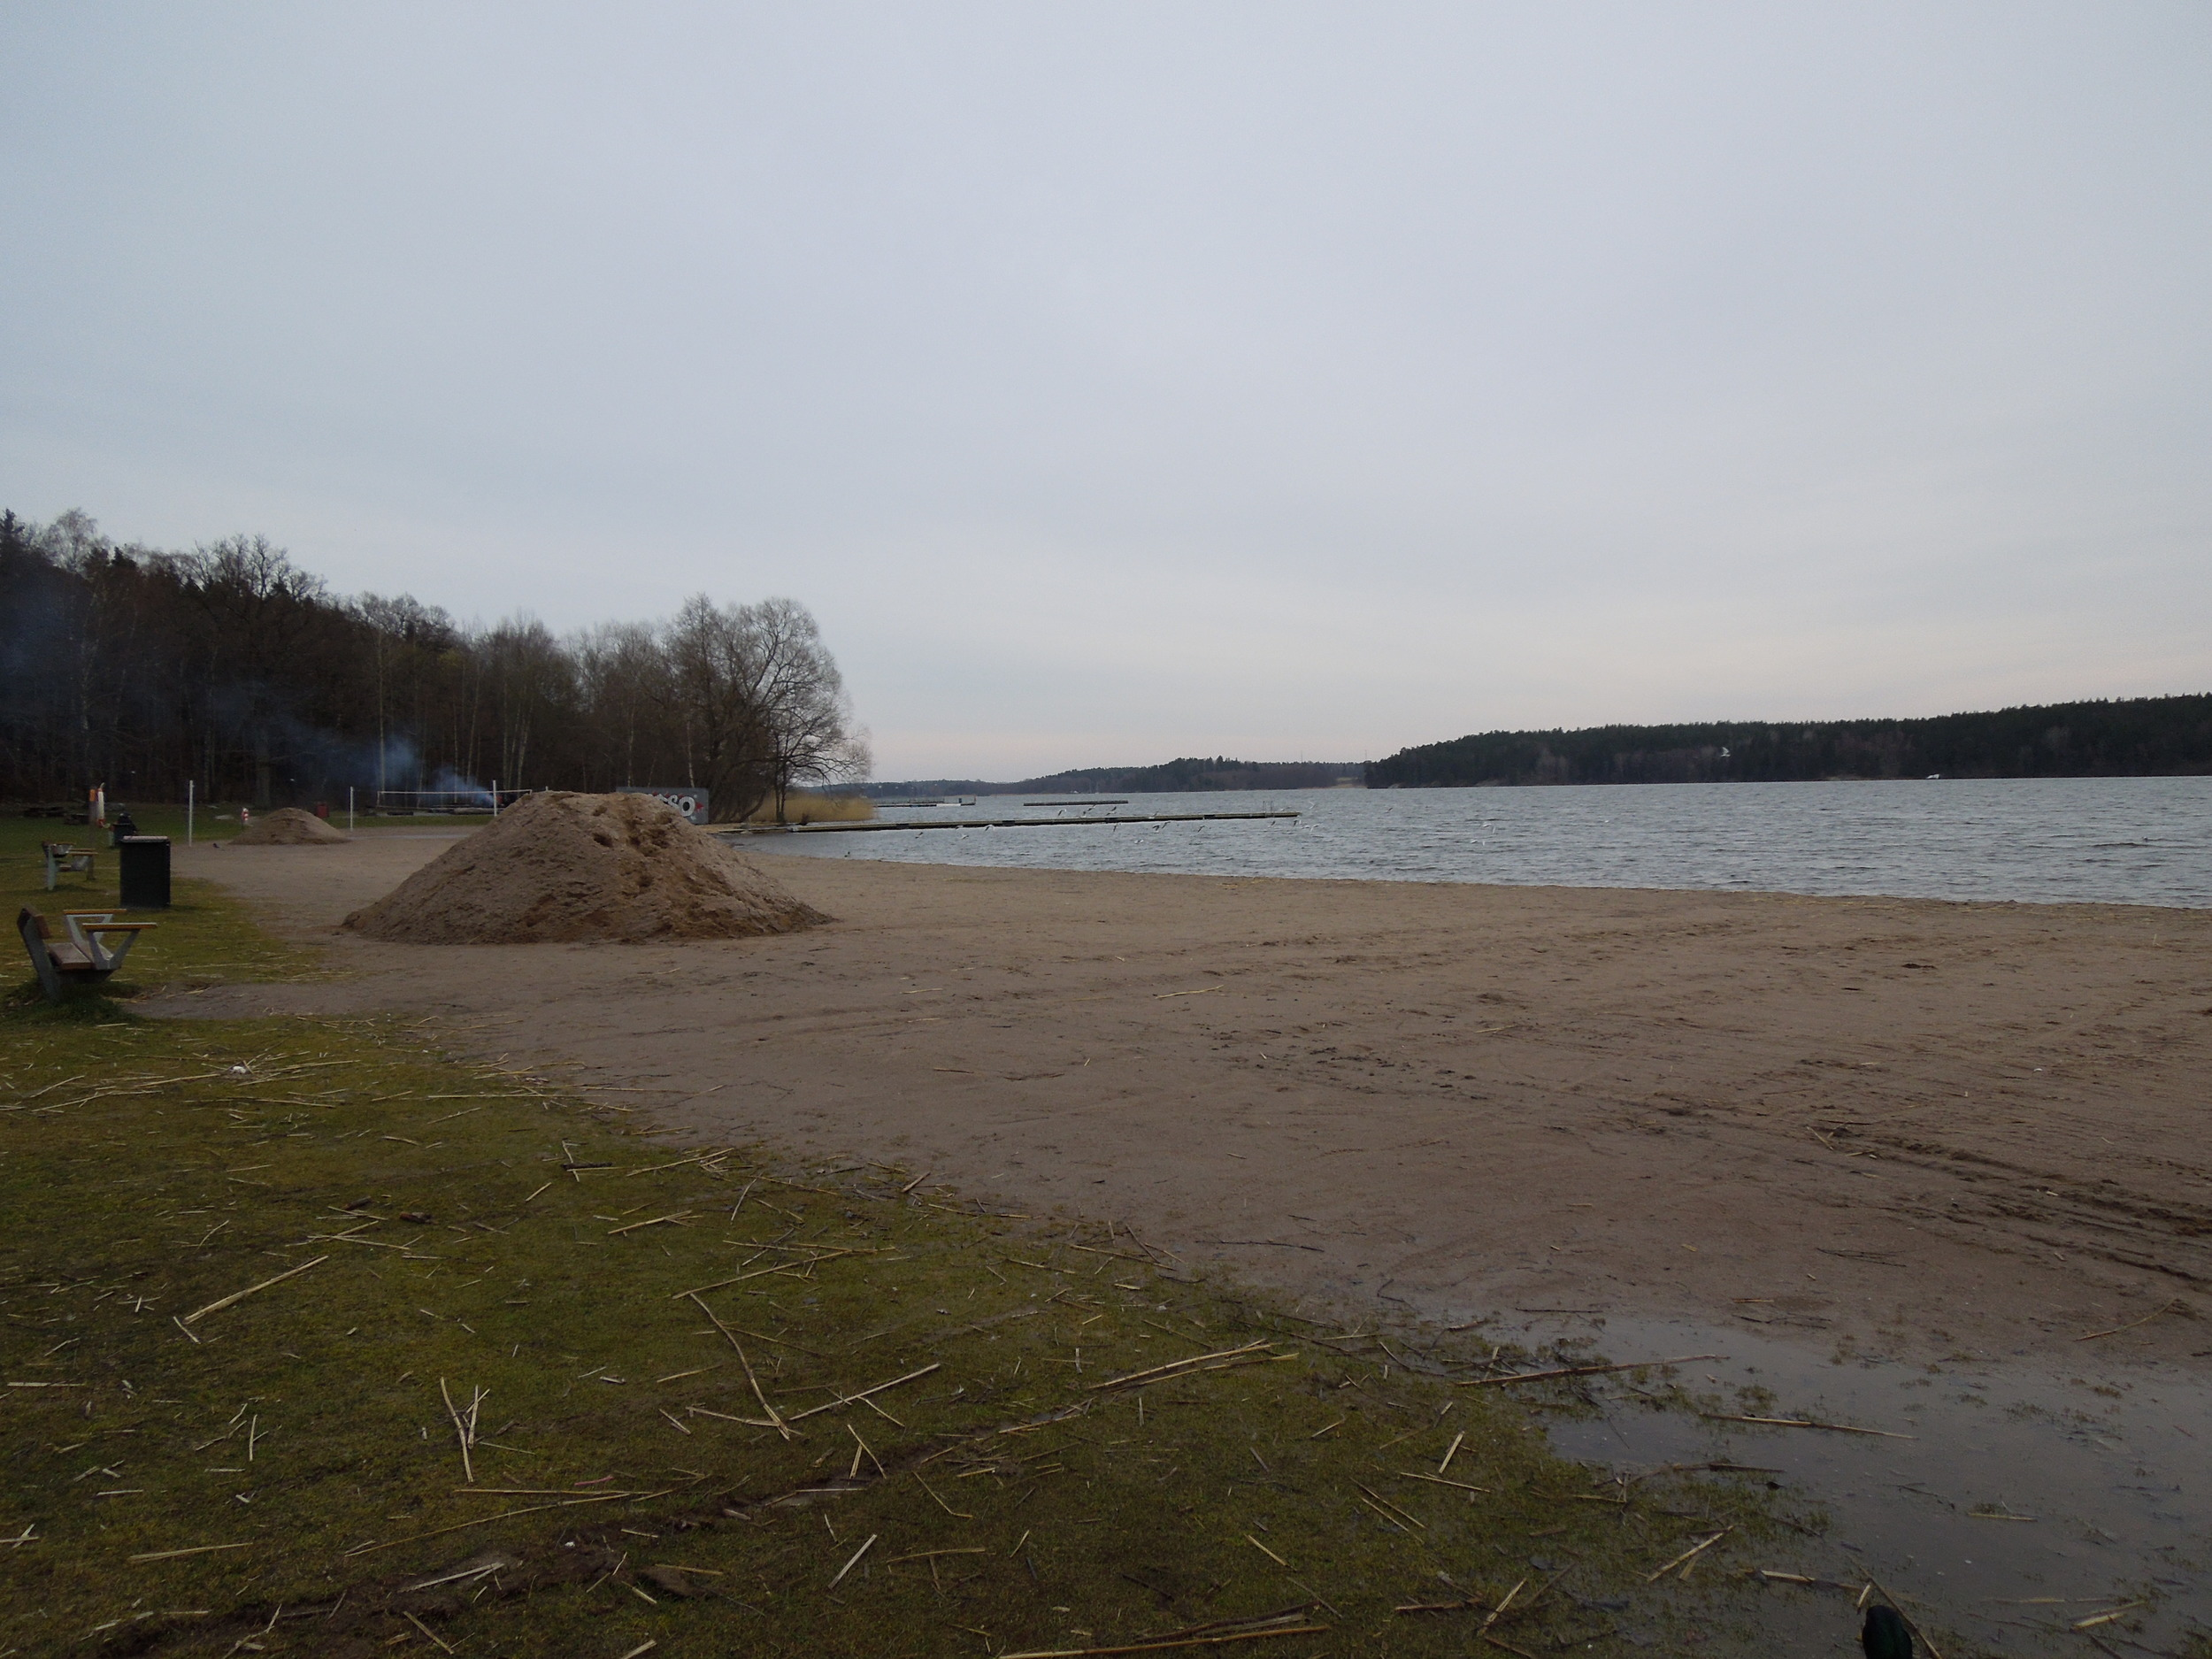 A beach area, it was really cold!